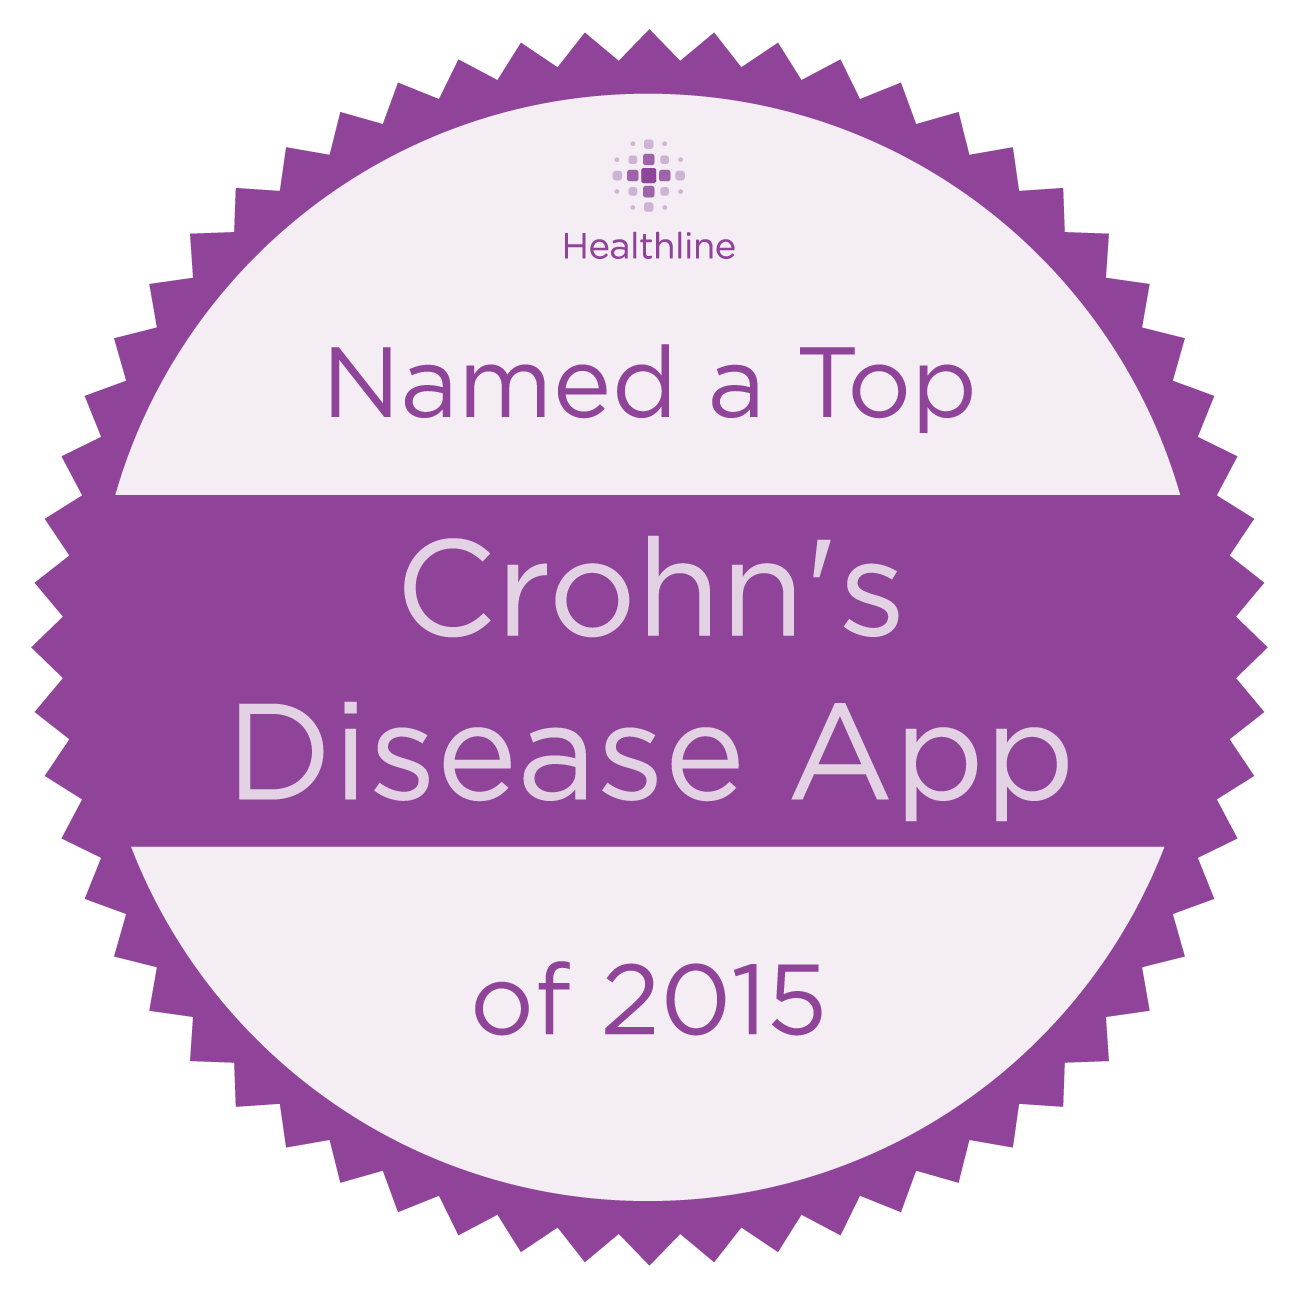 The Best Crohn's Disease iPhone and Android Apps of 2015